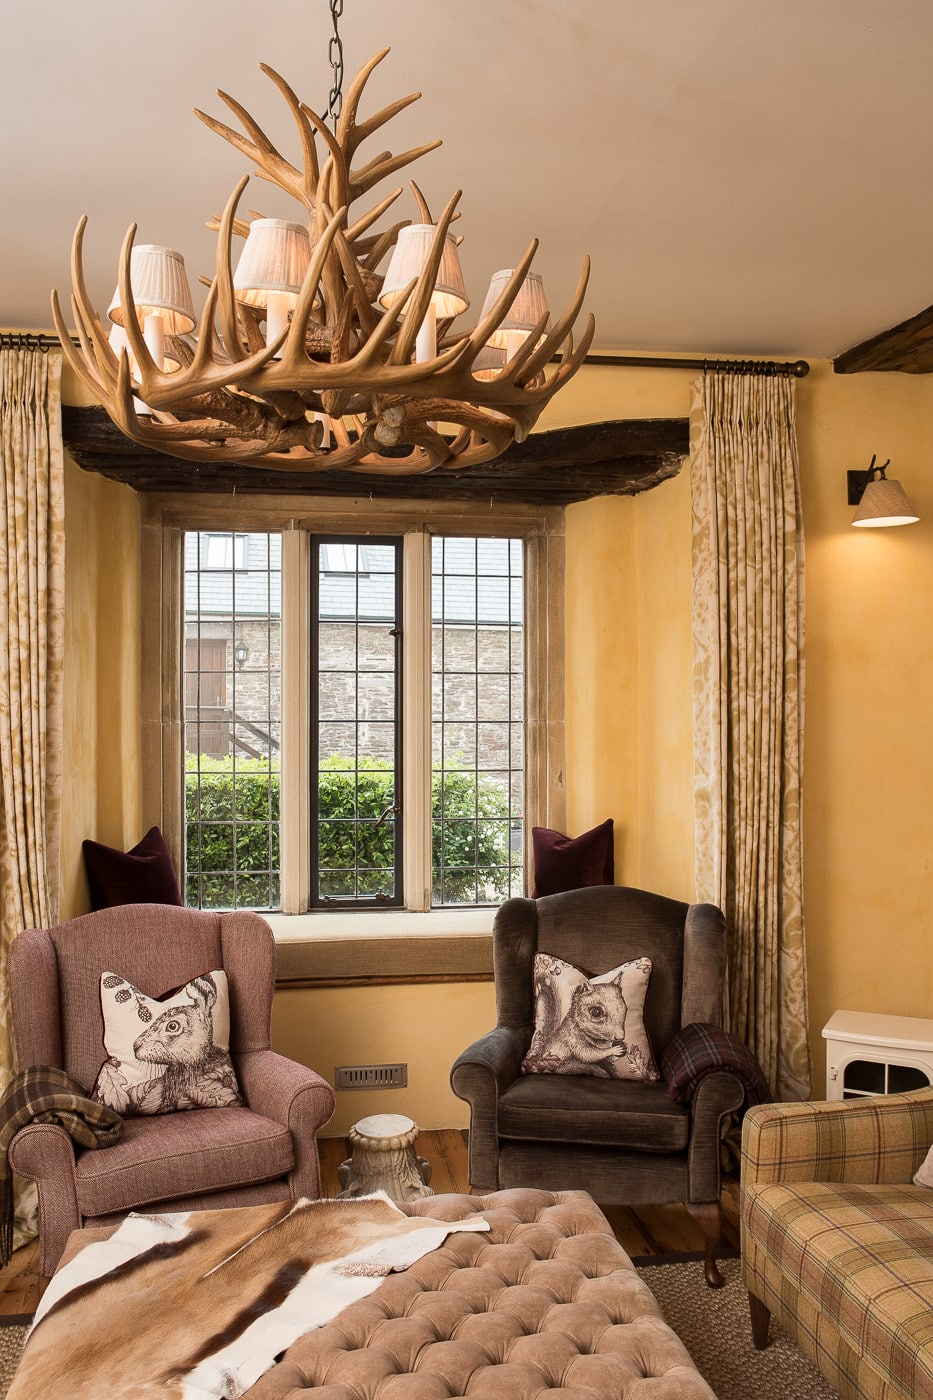 Country Manor with stag antler light feature